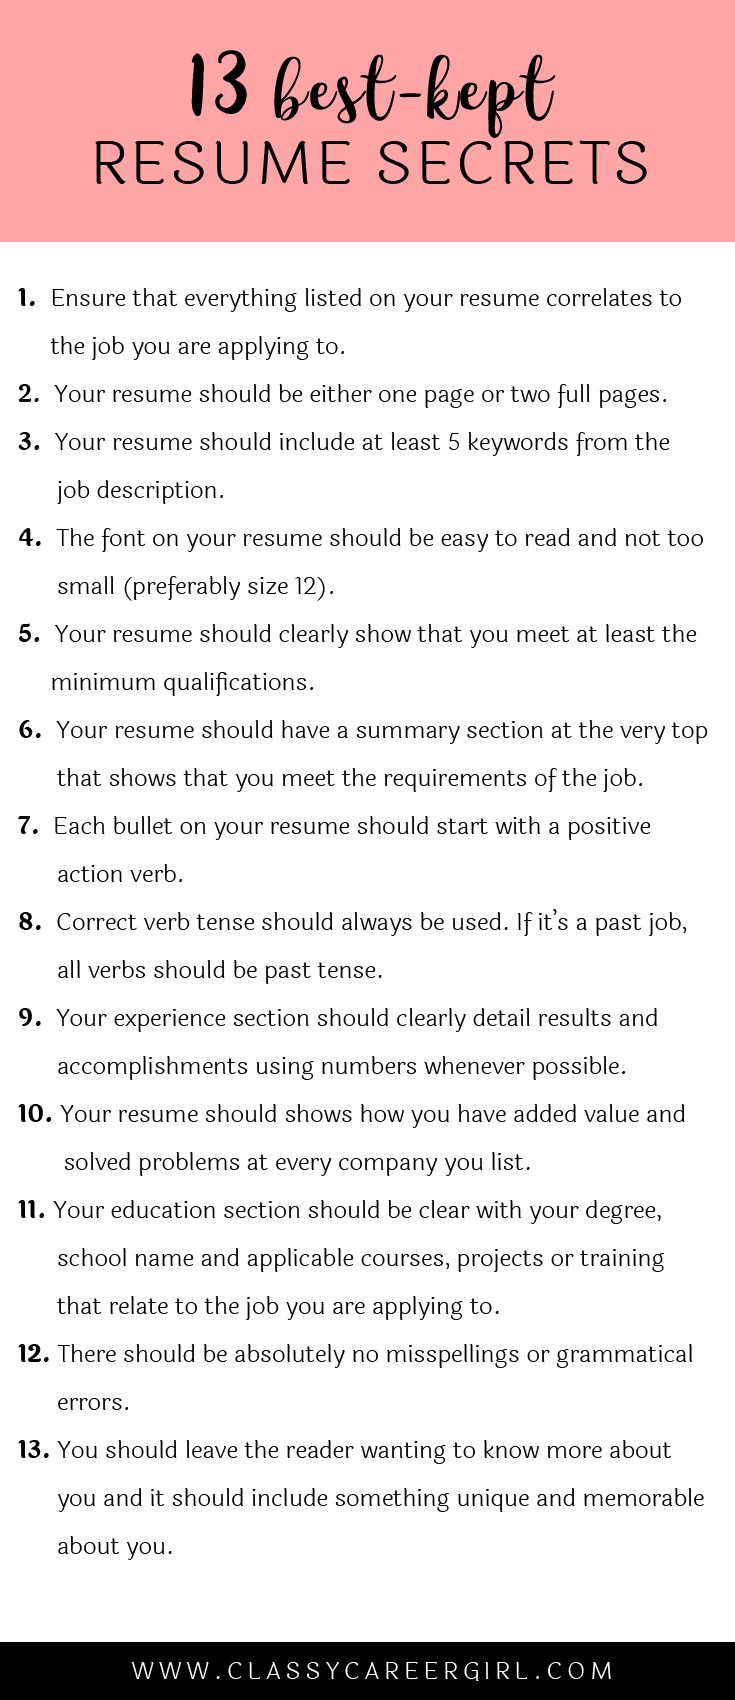 Opposenewapstandardsus  Scenic  Ideas About Resume On Pinterest  Cv Format Resume Cv And  With Luxury Some Hiring Managers Will Toss Your Resume Out If You Dont Know These  With Adorable Best Things To Put On A Resume Also Resume Goal In Addition Resume Development And Creative Resume Formats As Well As Resume For College Application Template Additionally Perfect Resume Format From Pinterestcom With Opposenewapstandardsus  Luxury  Ideas About Resume On Pinterest  Cv Format Resume Cv And  With Adorable Some Hiring Managers Will Toss Your Resume Out If You Dont Know These  And Scenic Best Things To Put On A Resume Also Resume Goal In Addition Resume Development From Pinterestcom